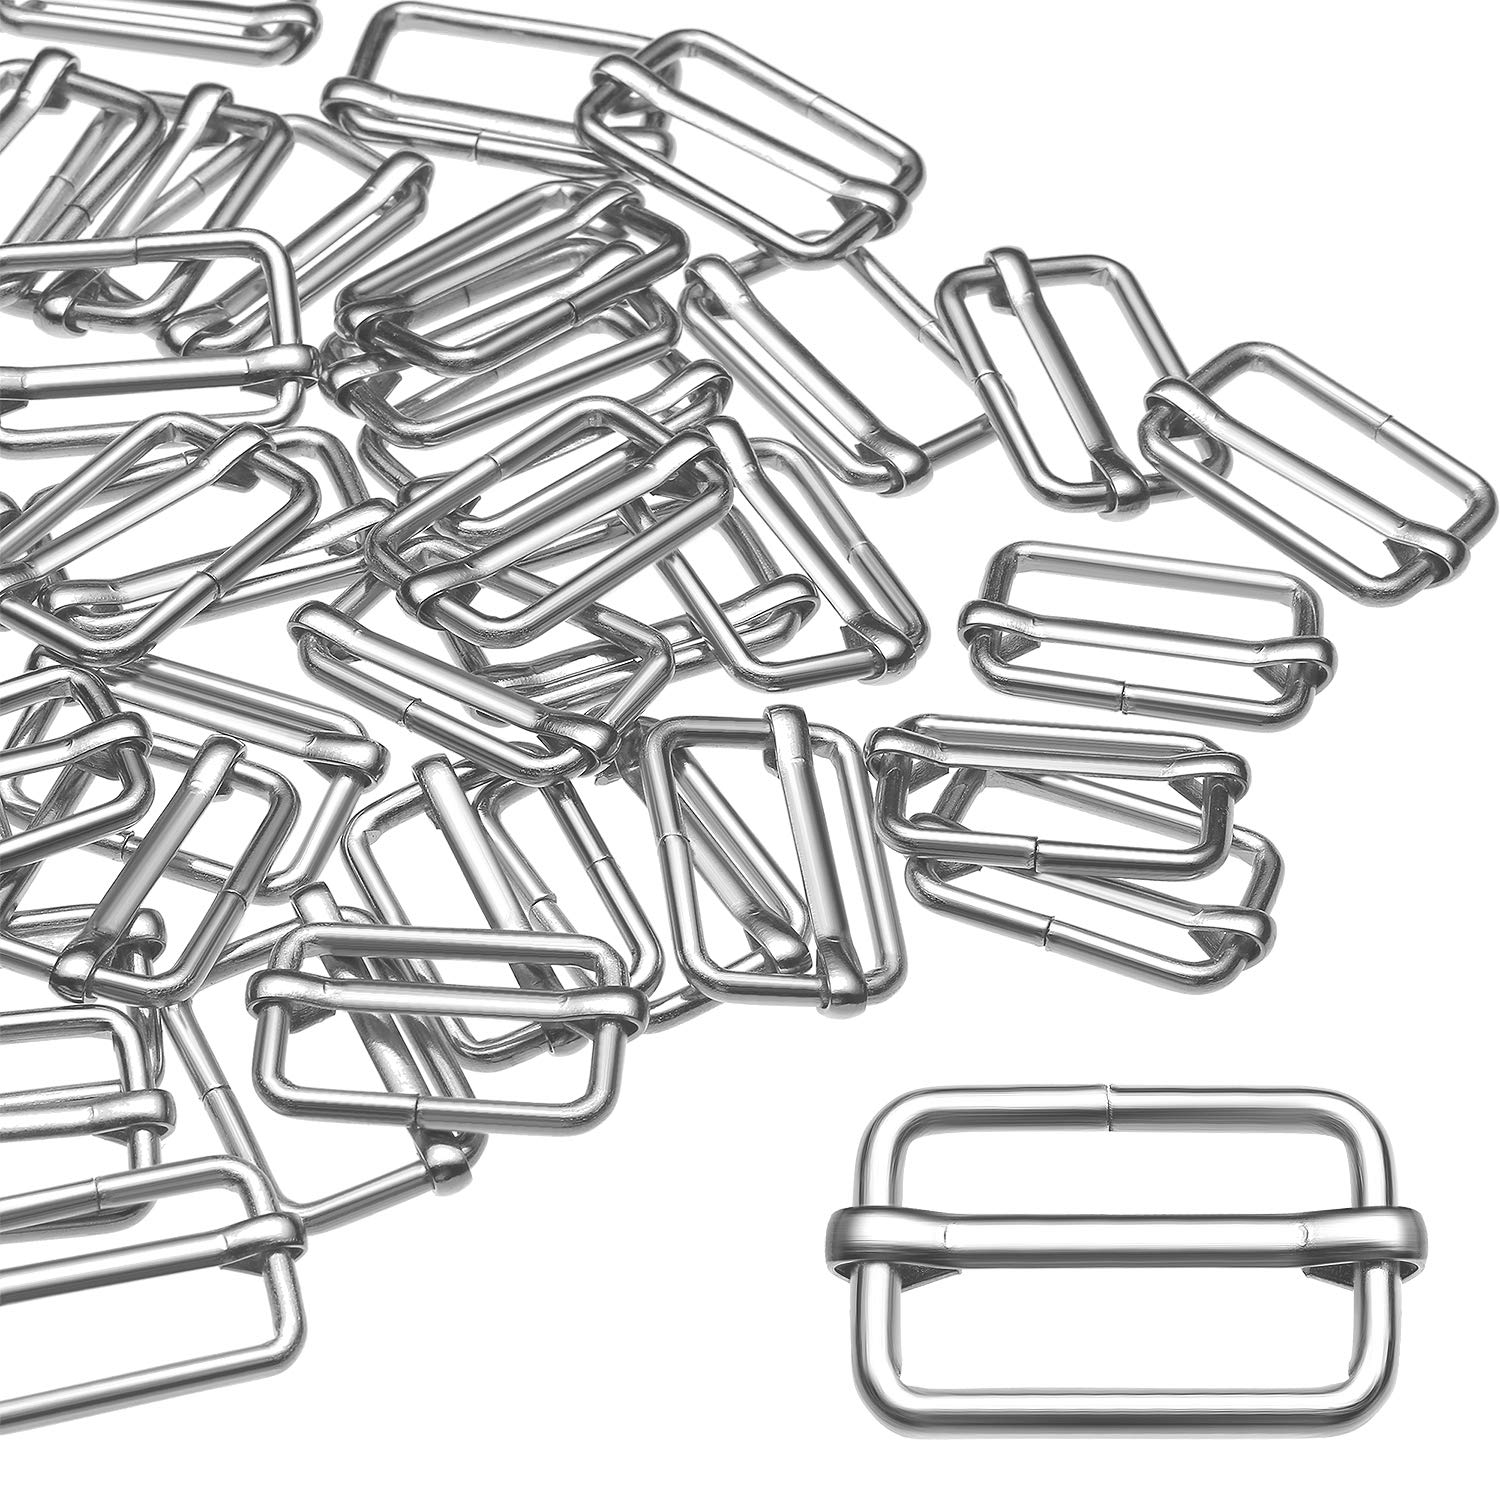 Tatuo 50 Pieces Slide Buckle 1 Inch Metal Tri-Glide Slides Silvery Slide Buckle Rectangle Adjustable Webbing Slider for Fasteners Strap Backpack DIY Accessories